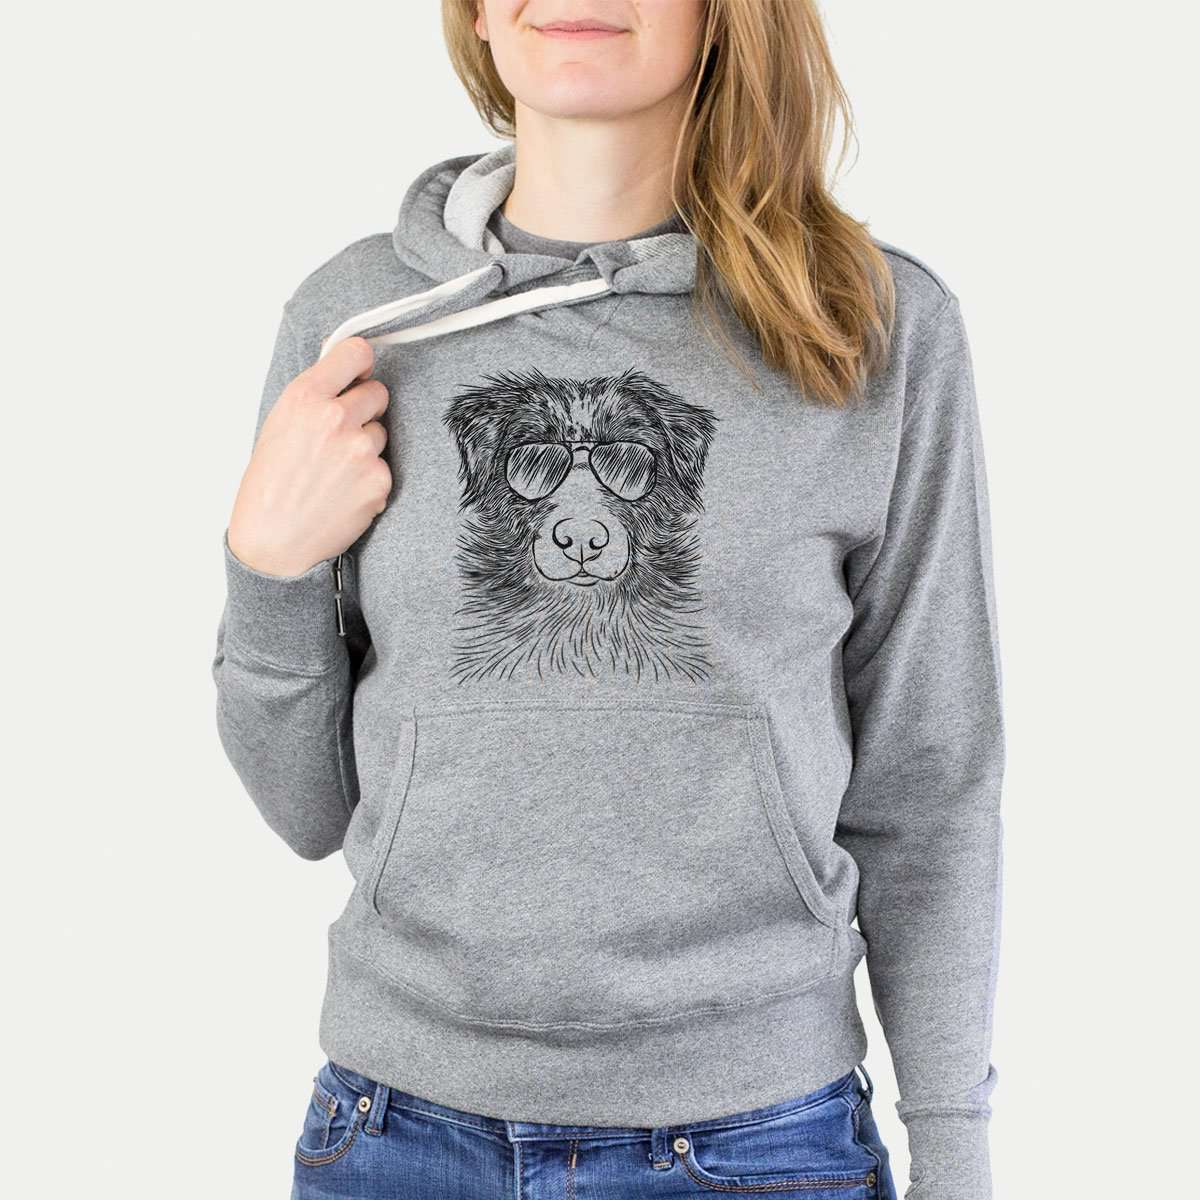 Gram the Australian Shepherd - Grey French Terry Hooded Sweatshirt